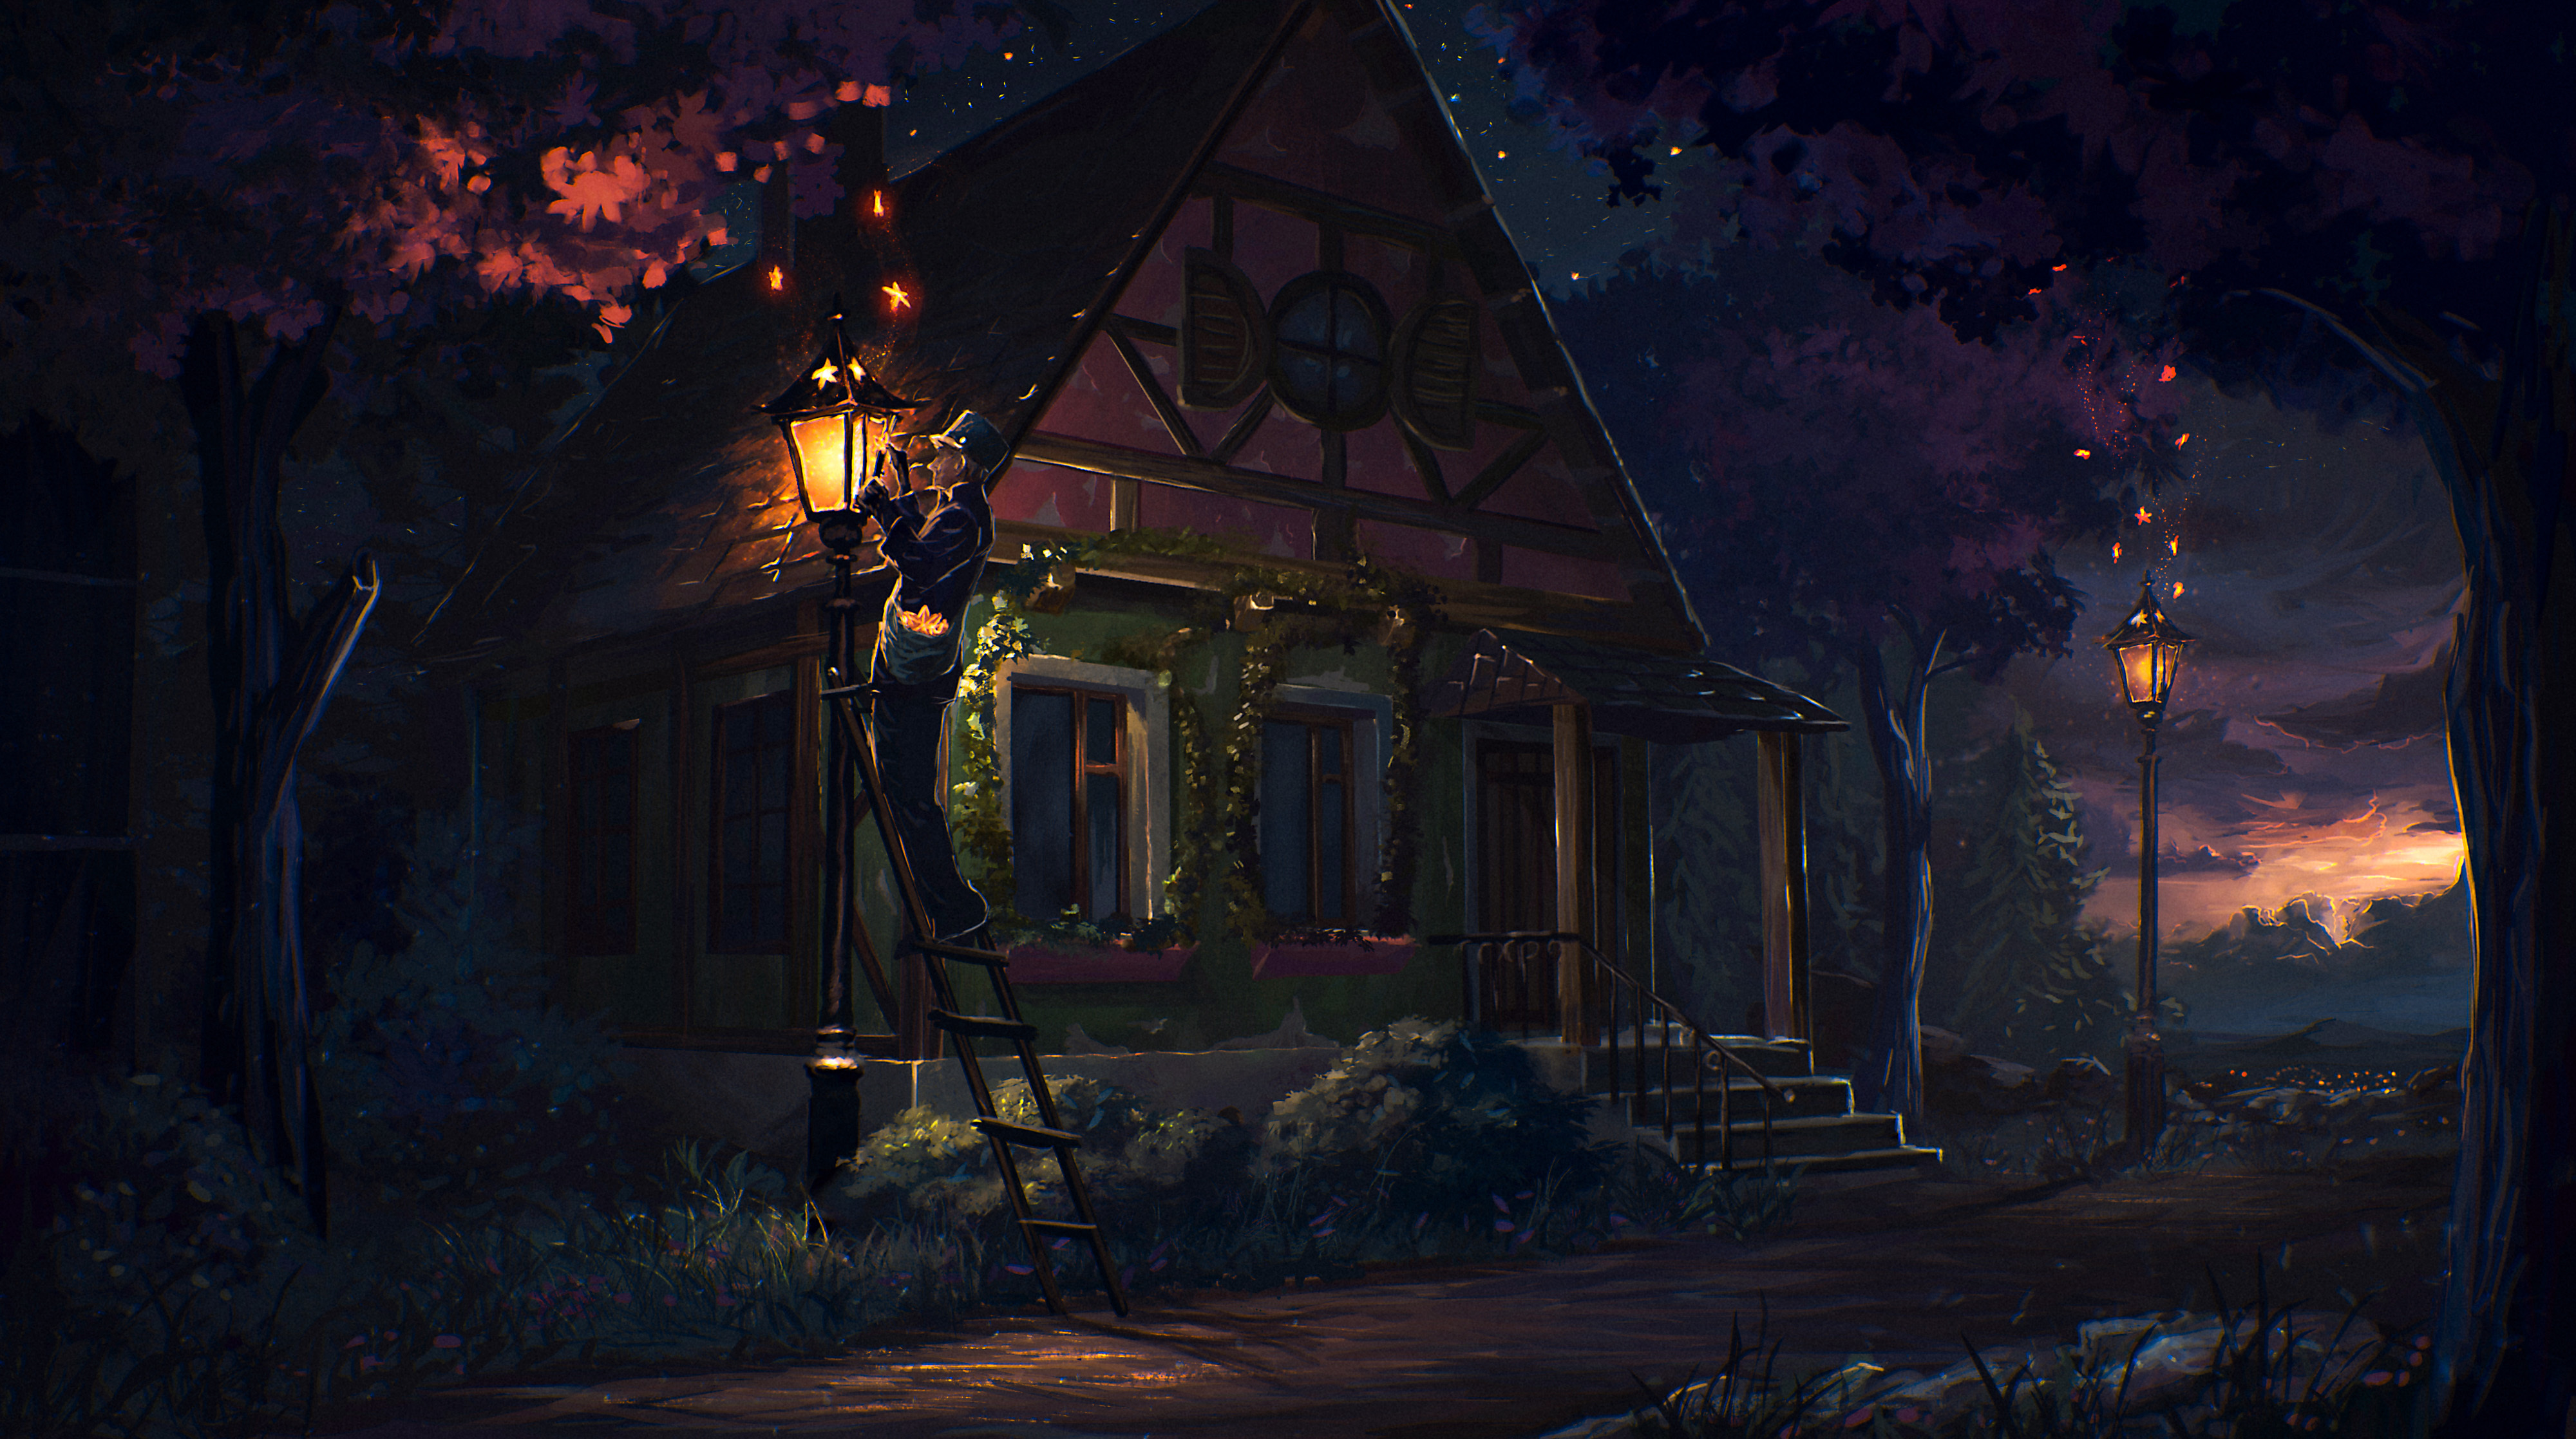 107882 download wallpaper Fantasy, House, Story, Fairy Tale, Art, Lamp, Lantern, Night screensavers and pictures for free